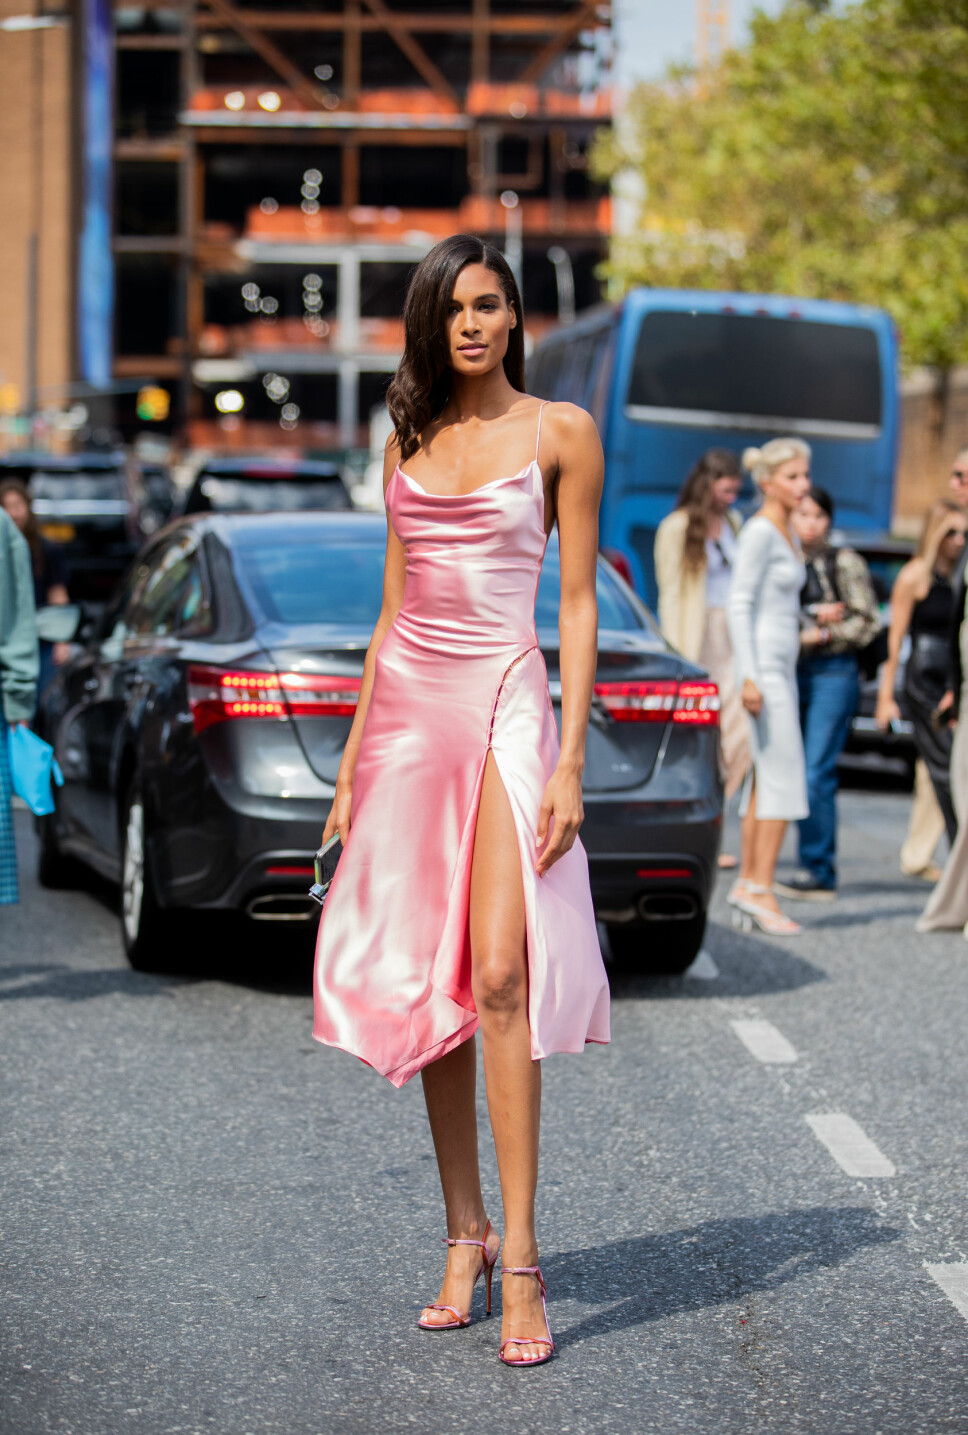 ROSA DRØM: Modell Cindy Bruna i en rosa satengkjole med spaghettistropper under New York Fashion Week, 9. september 2019.